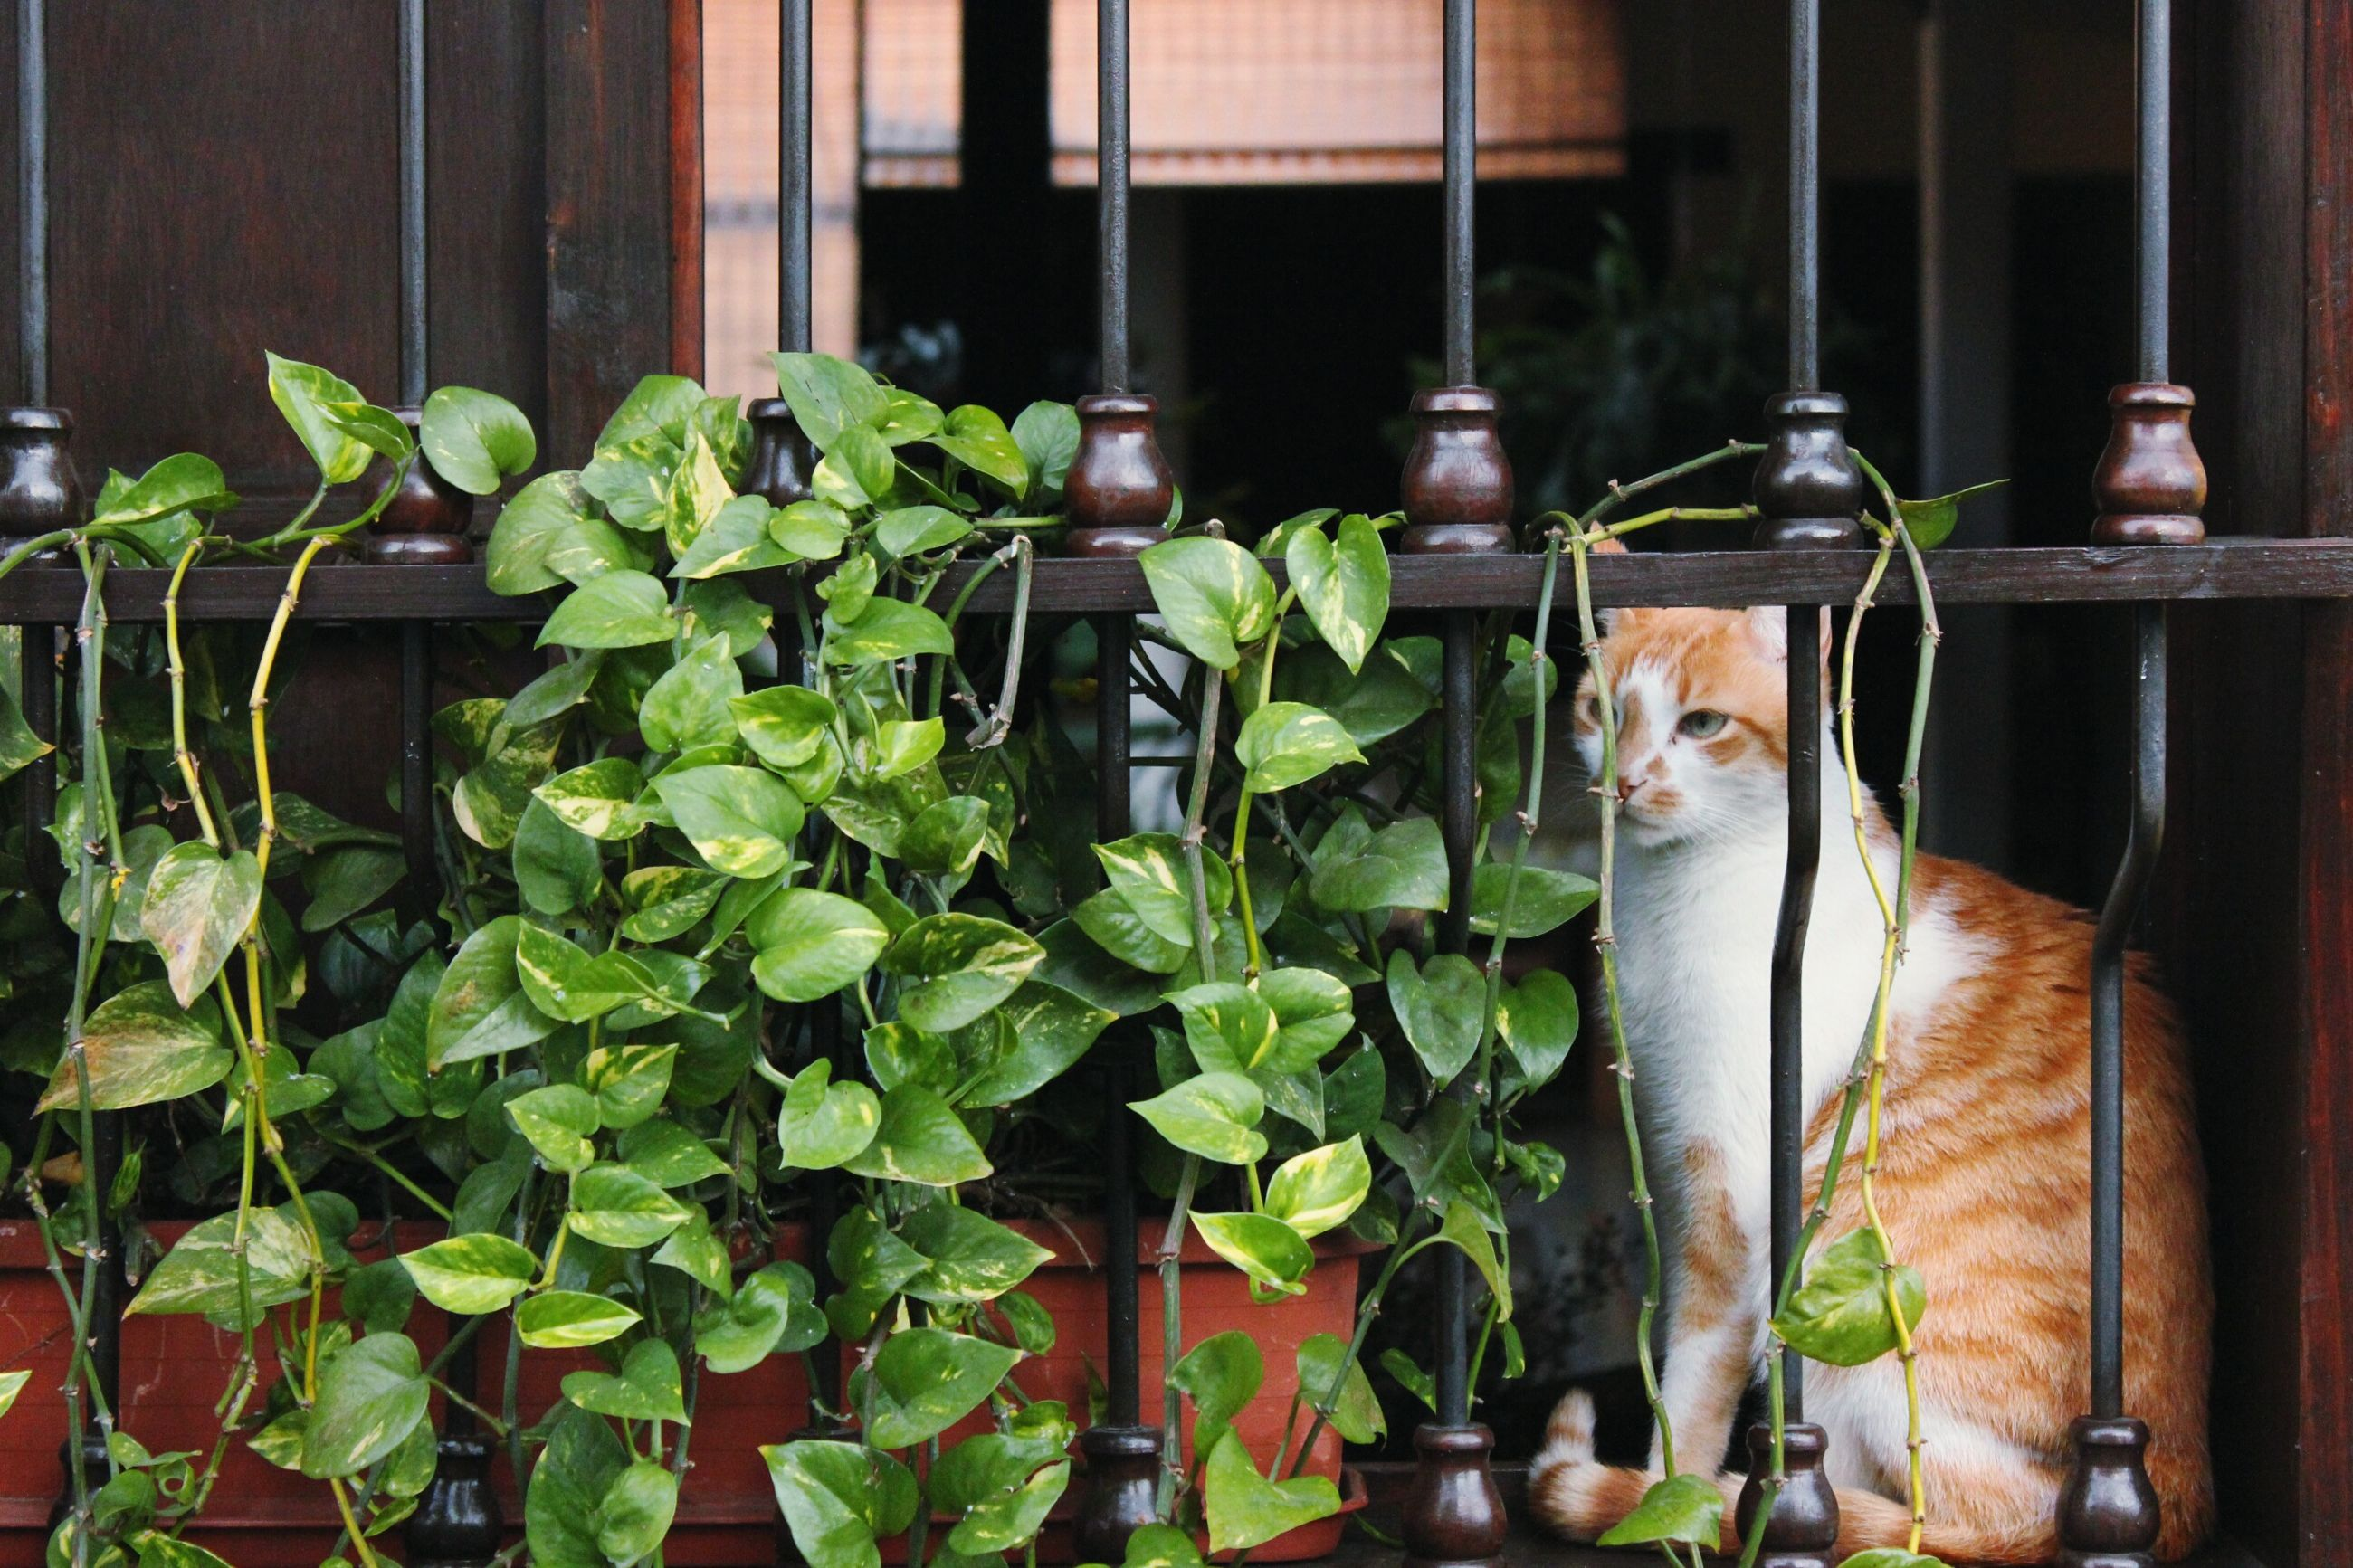 domestic cat, cat, pets, domestic animals, plant, animal themes, potted plant, mammal, one animal, window, leaf, window sill, feline, green color, growth, indoors, front or back yard, house, close-up, glass - material